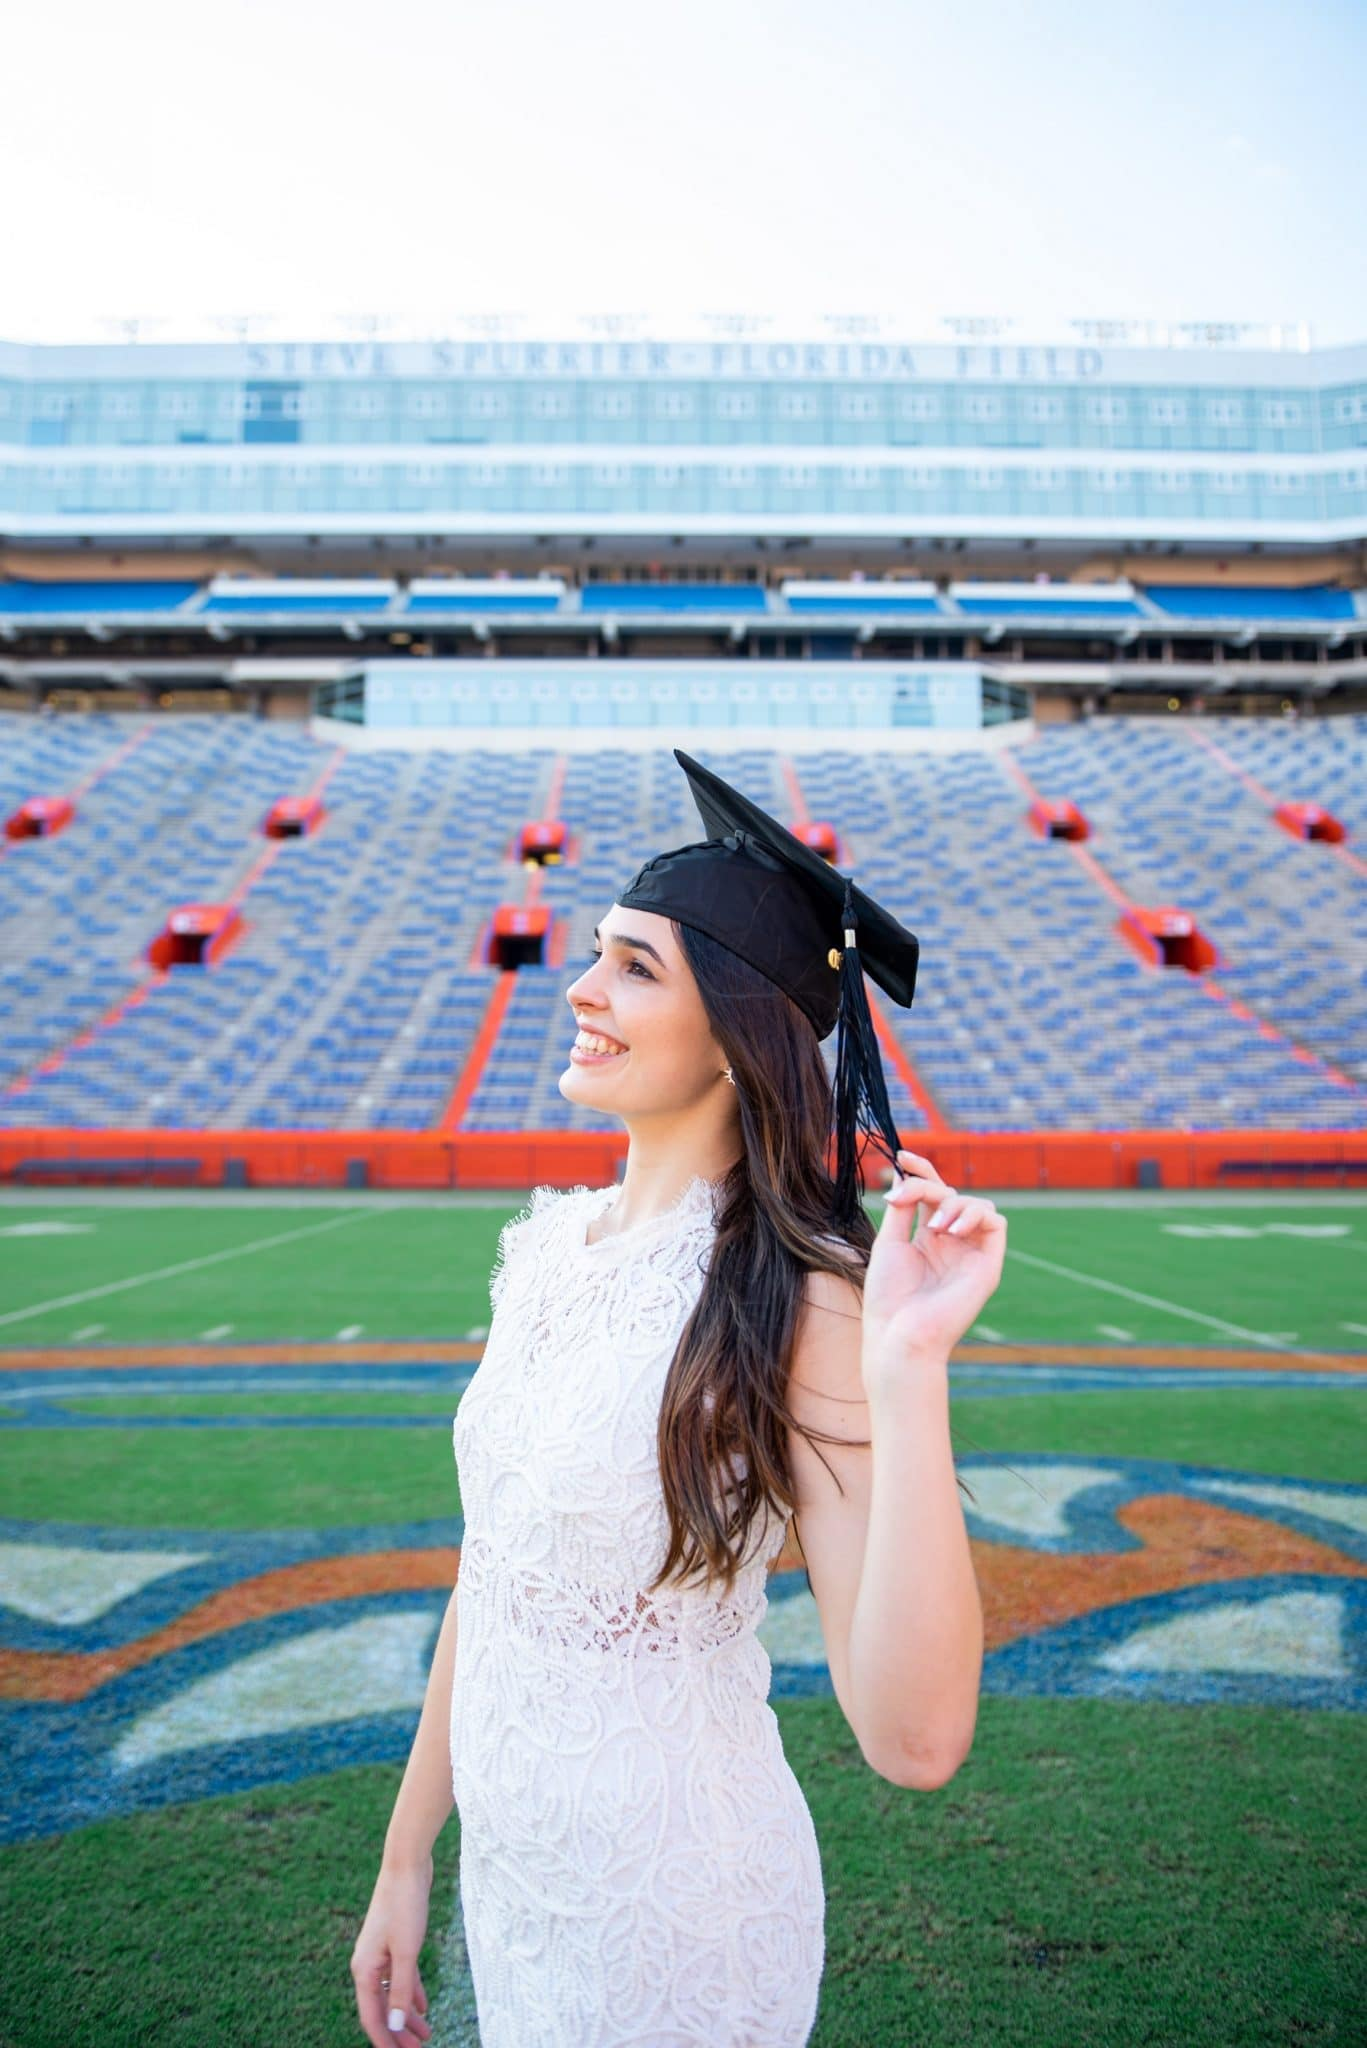 Sandra Cardenal poses for a photo in Ben Hill Griffin Stadium in her graduation cap